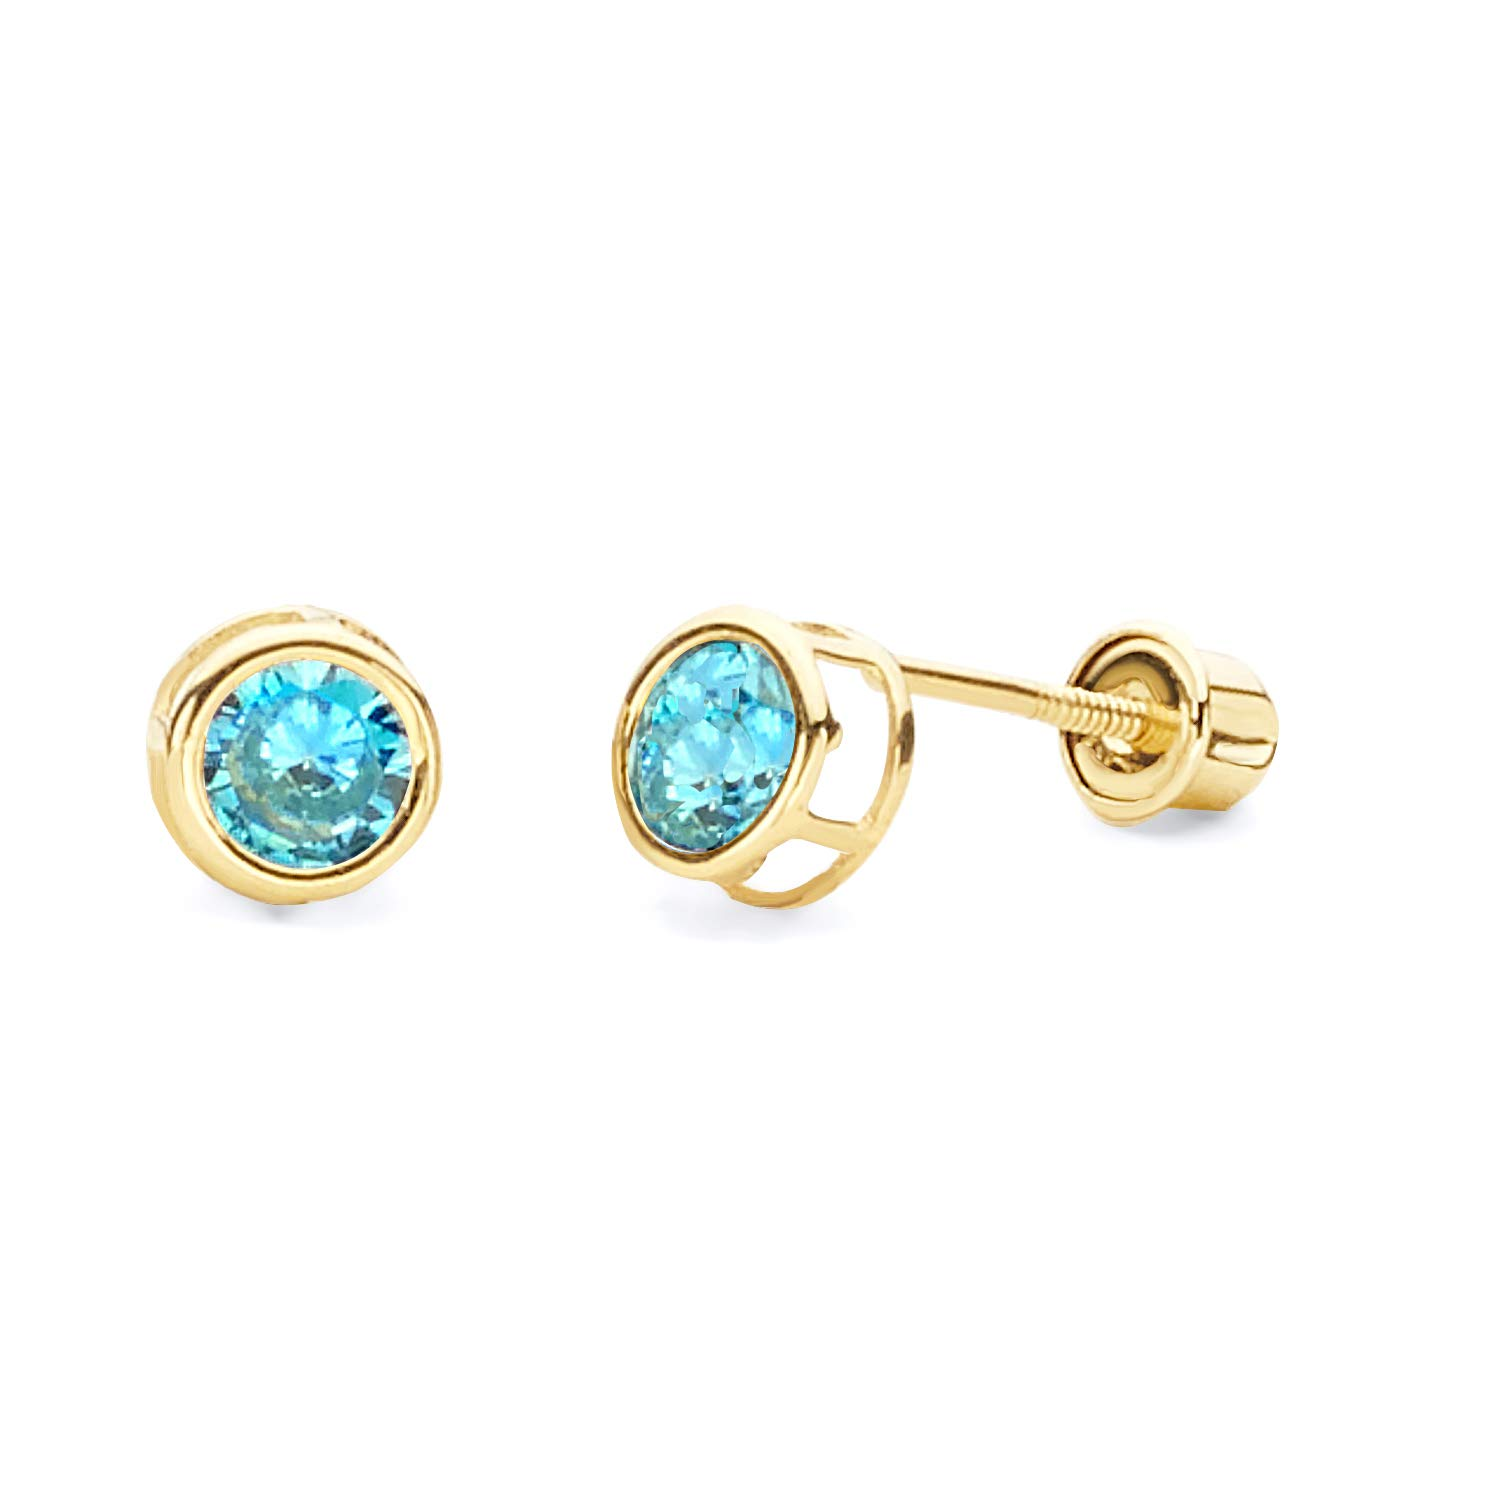 October Wellingsale 14K Yellow Gold Polished 3mm Round Birth CZ Cubic Zirconia Stone Solitaire Basket Style Prong Set Stud Earrings With Screw Back